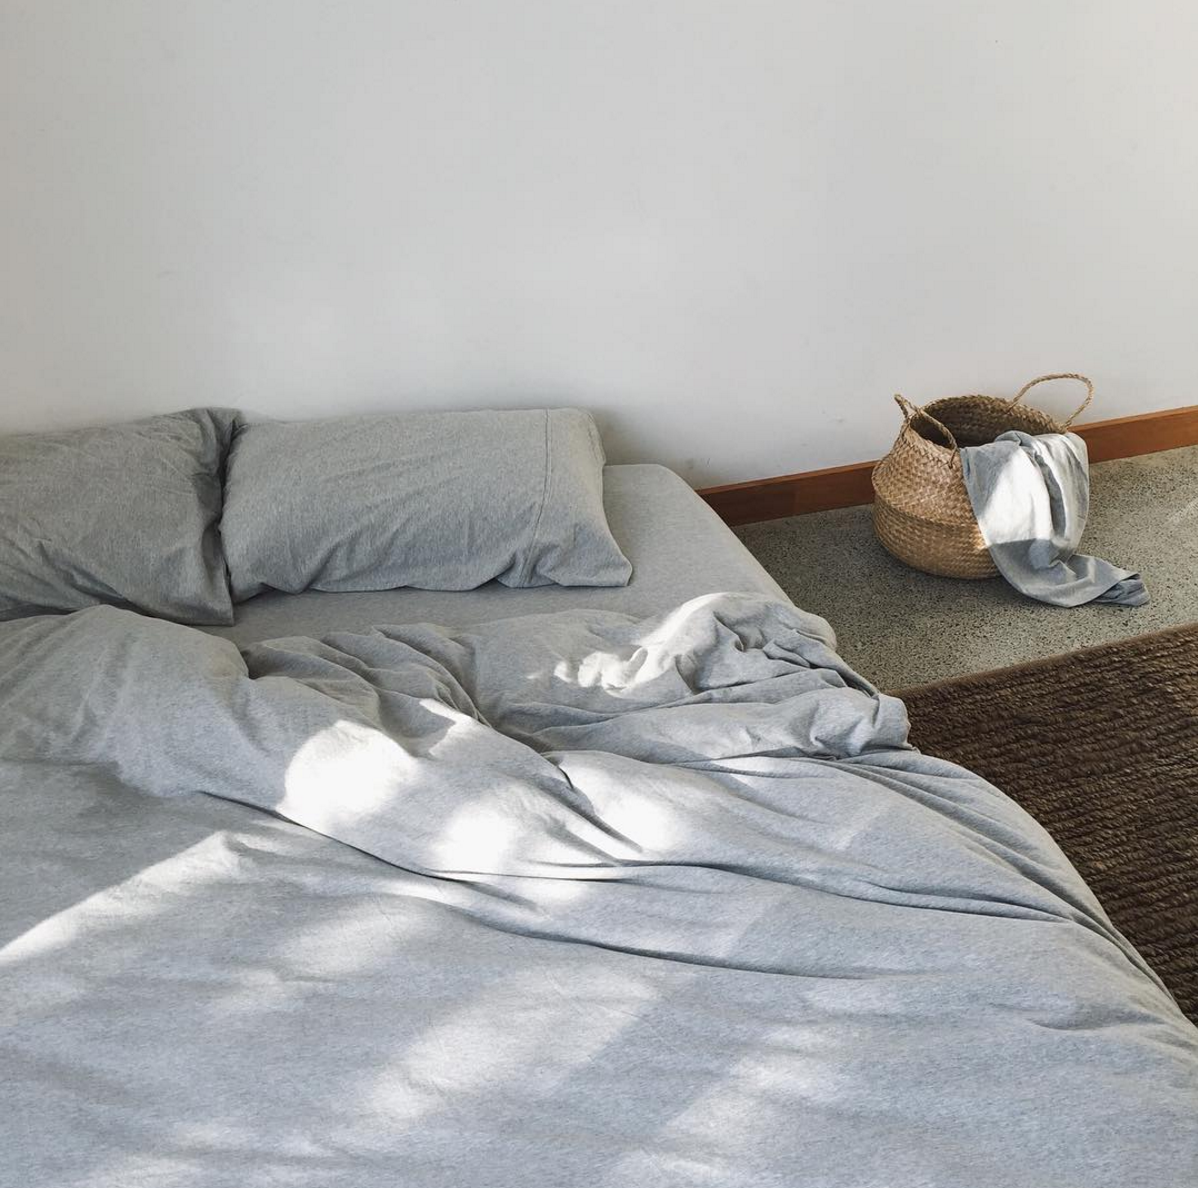 dehei-bedding-grey-marle-bedding-remodelista-1